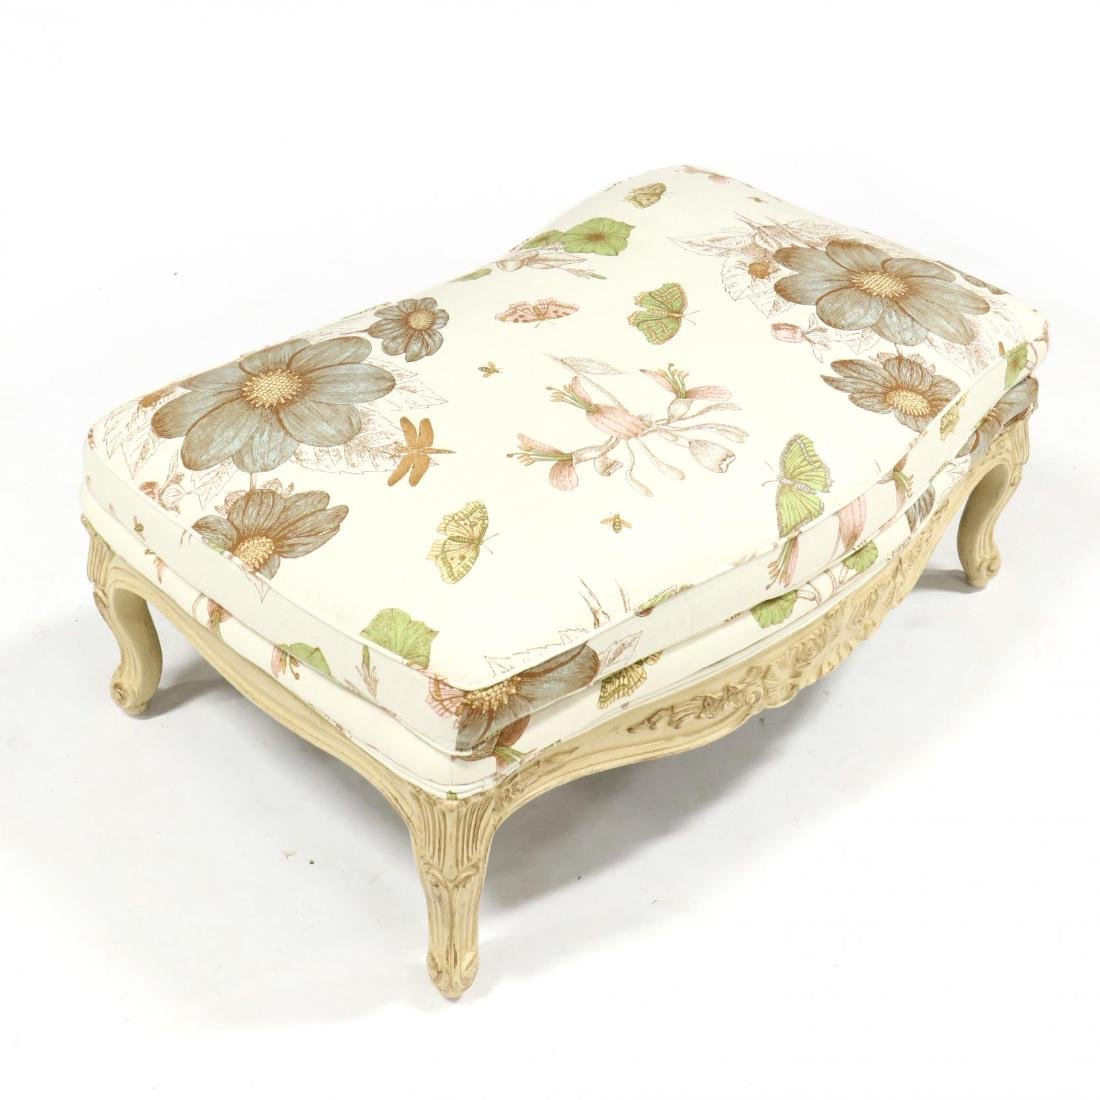 French Provincial Style Carved and Painted Ottoman - 3